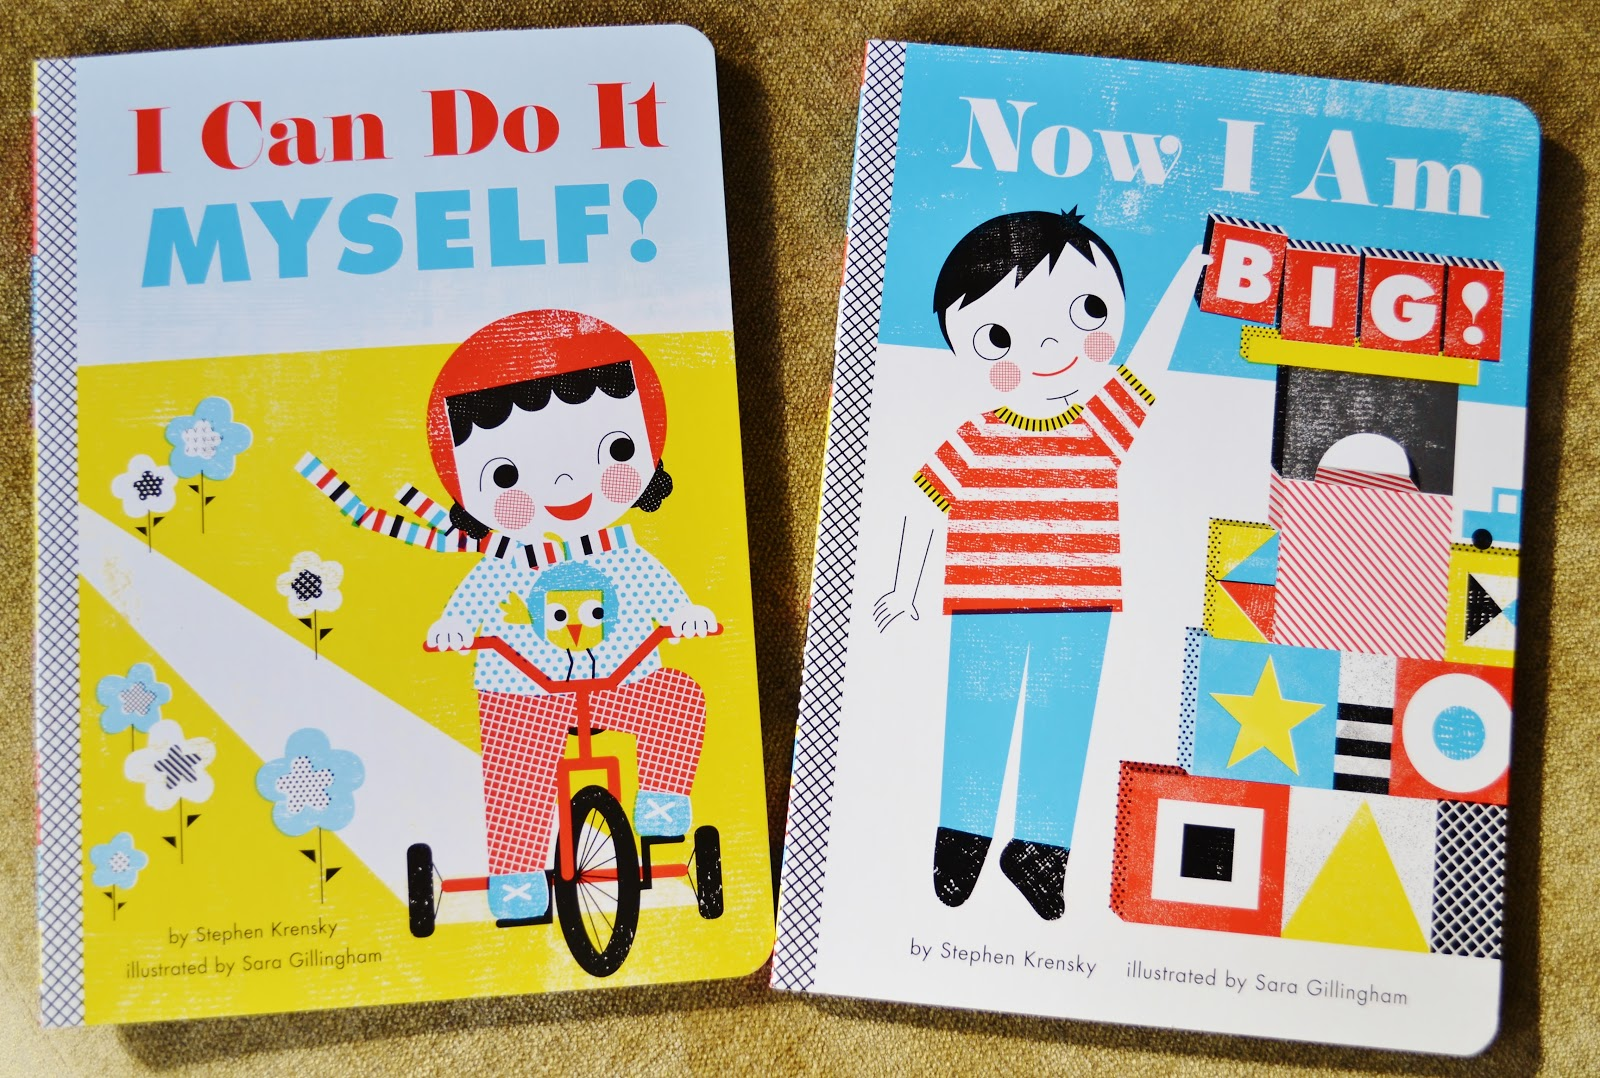 Julias bookbag super cute baby board books well looky look look what i found at target the other day i can do it myself and now i am big by stephen krensky and sara gillingham these babies solutioingenieria